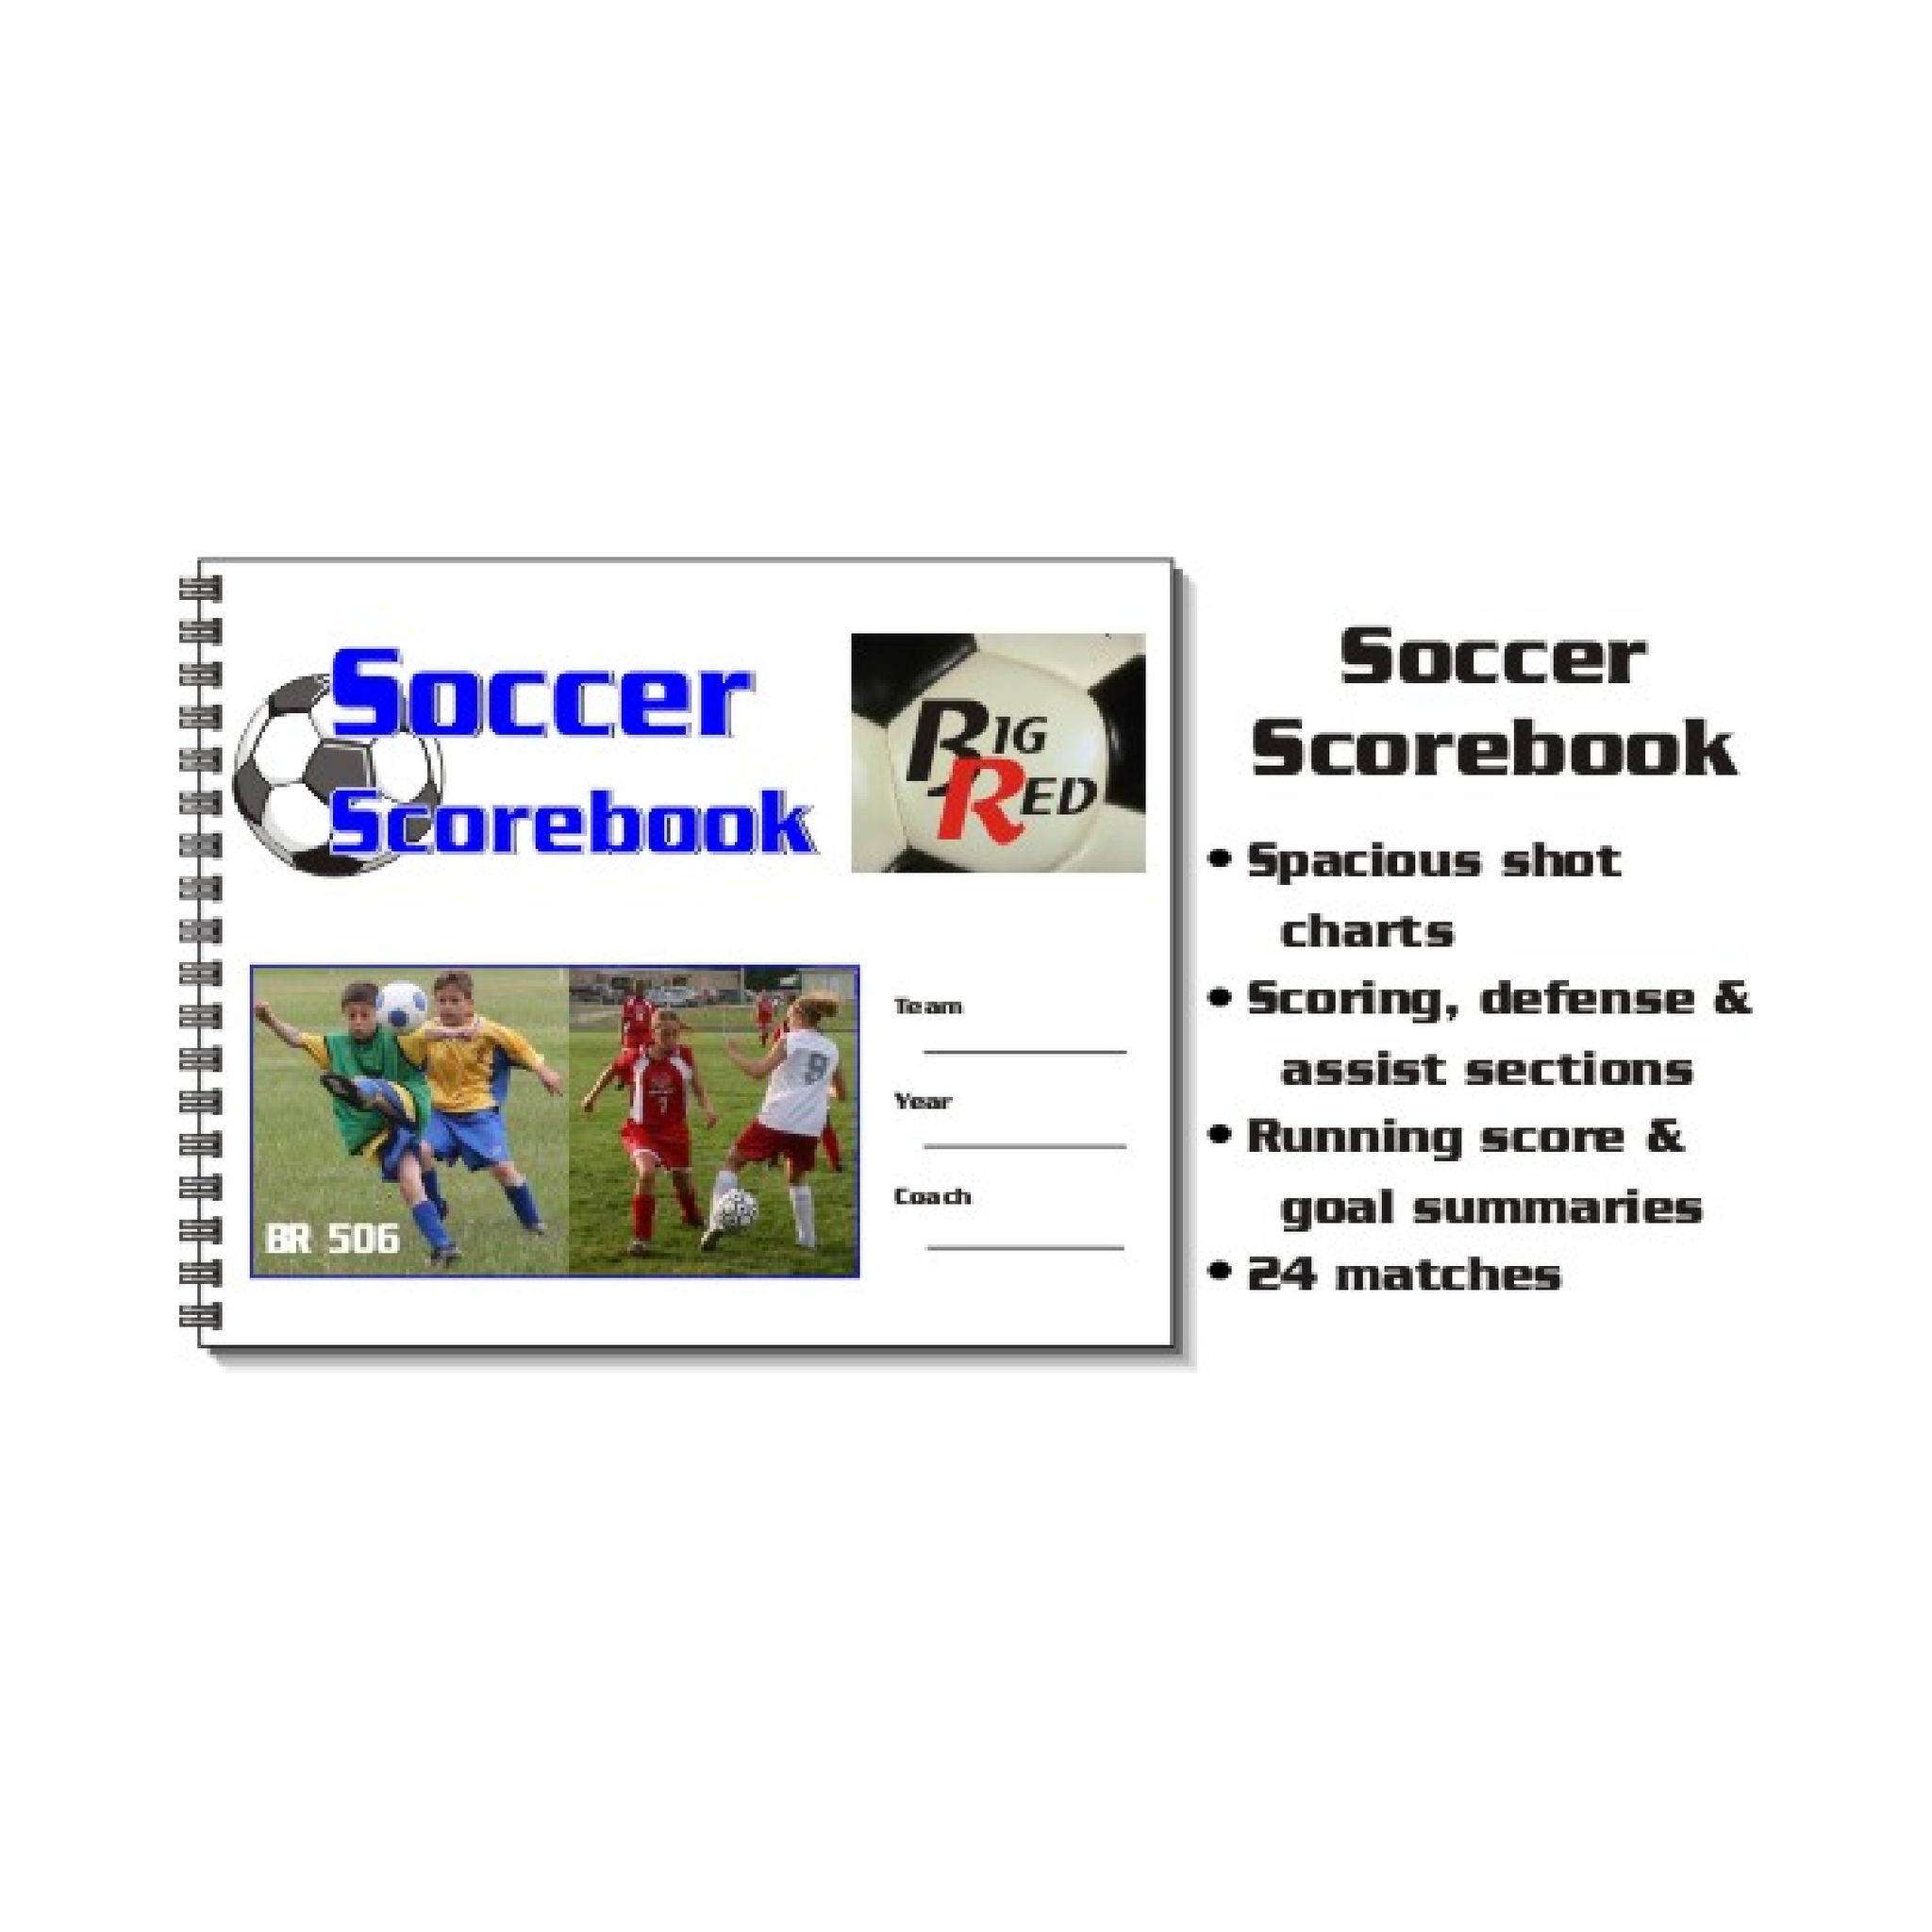 Big Red Soccer Scorebook